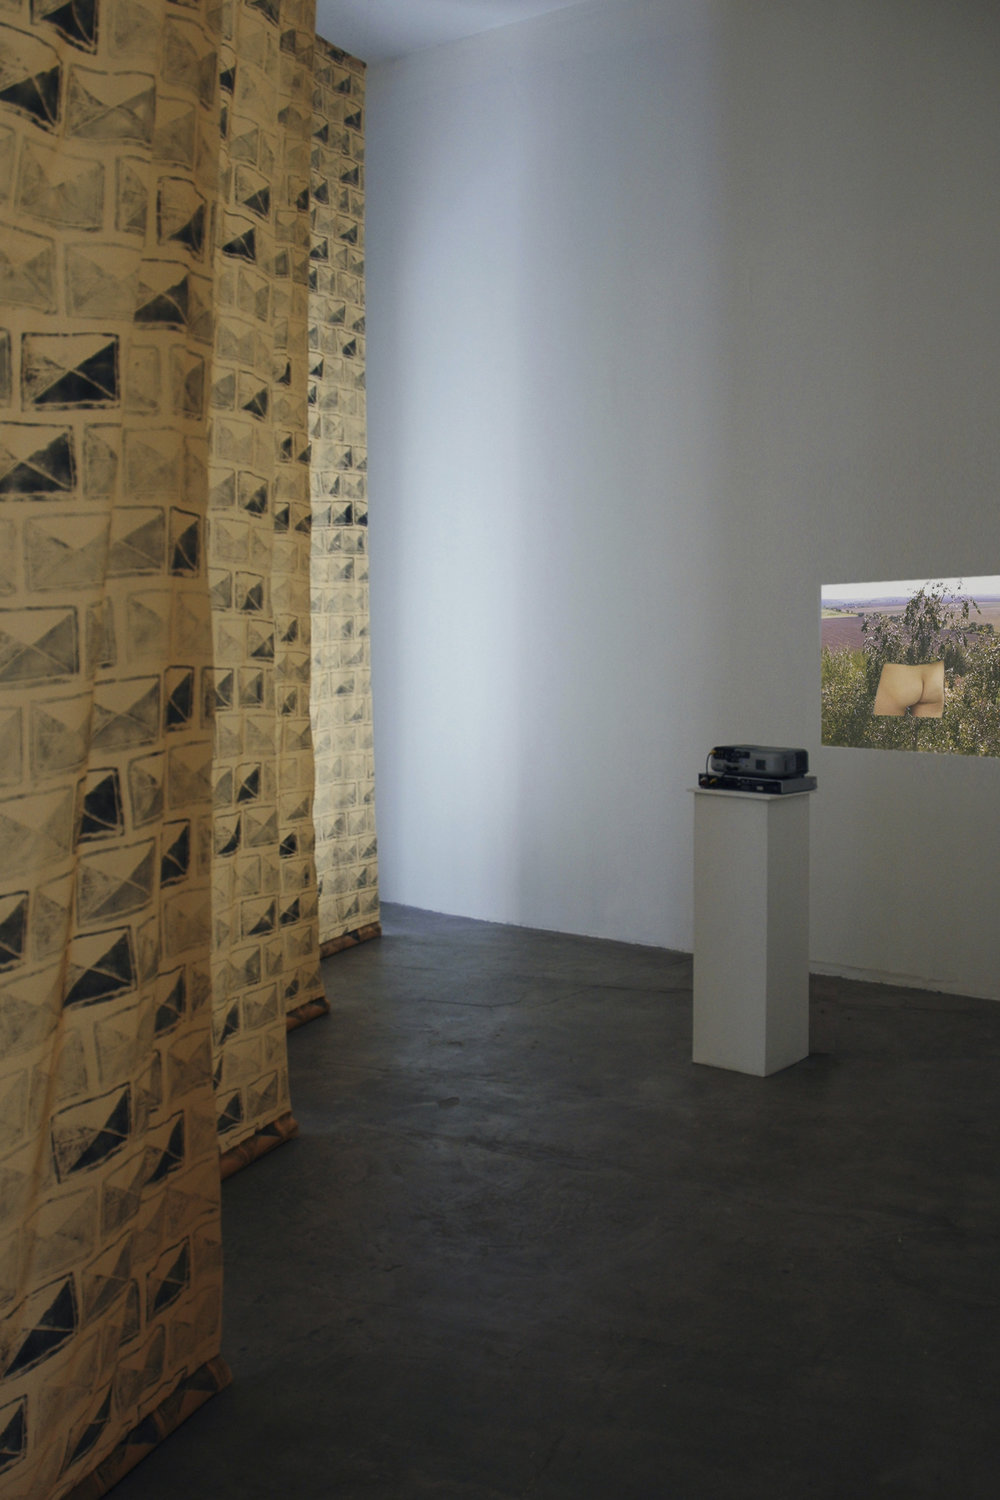 A Romance in Two Parts    Exhibition view Galeria Magda Bellotti, Madrid   From left,  Between us  (ceramic block-print onto fabric);  Testpiece I  (video projection)   2012